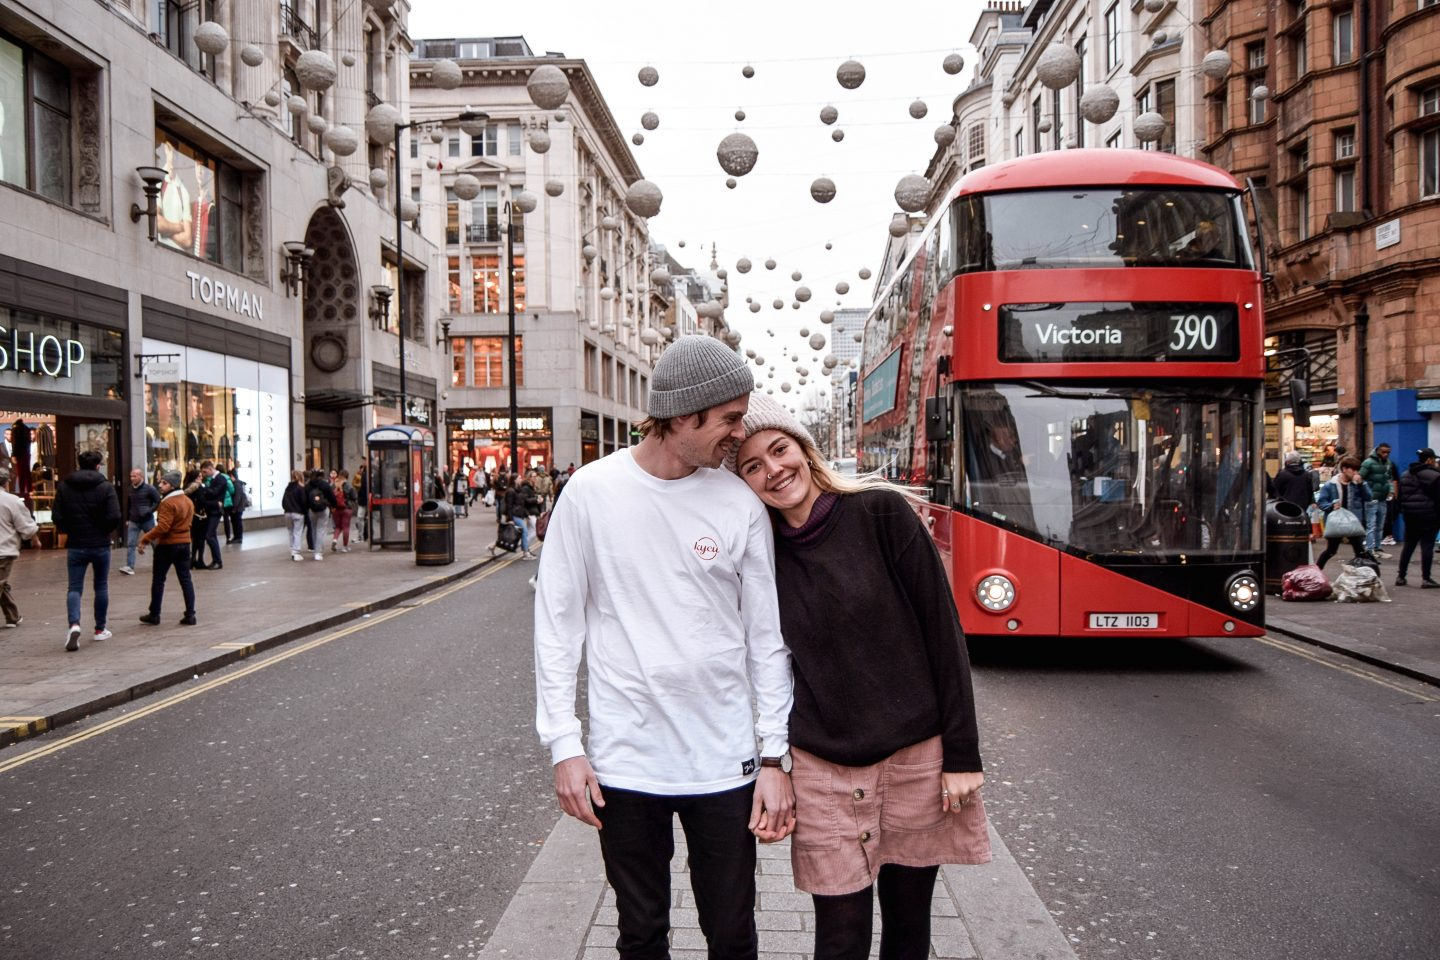 Oxford Street Red Bus London 4 Day London Itinerary